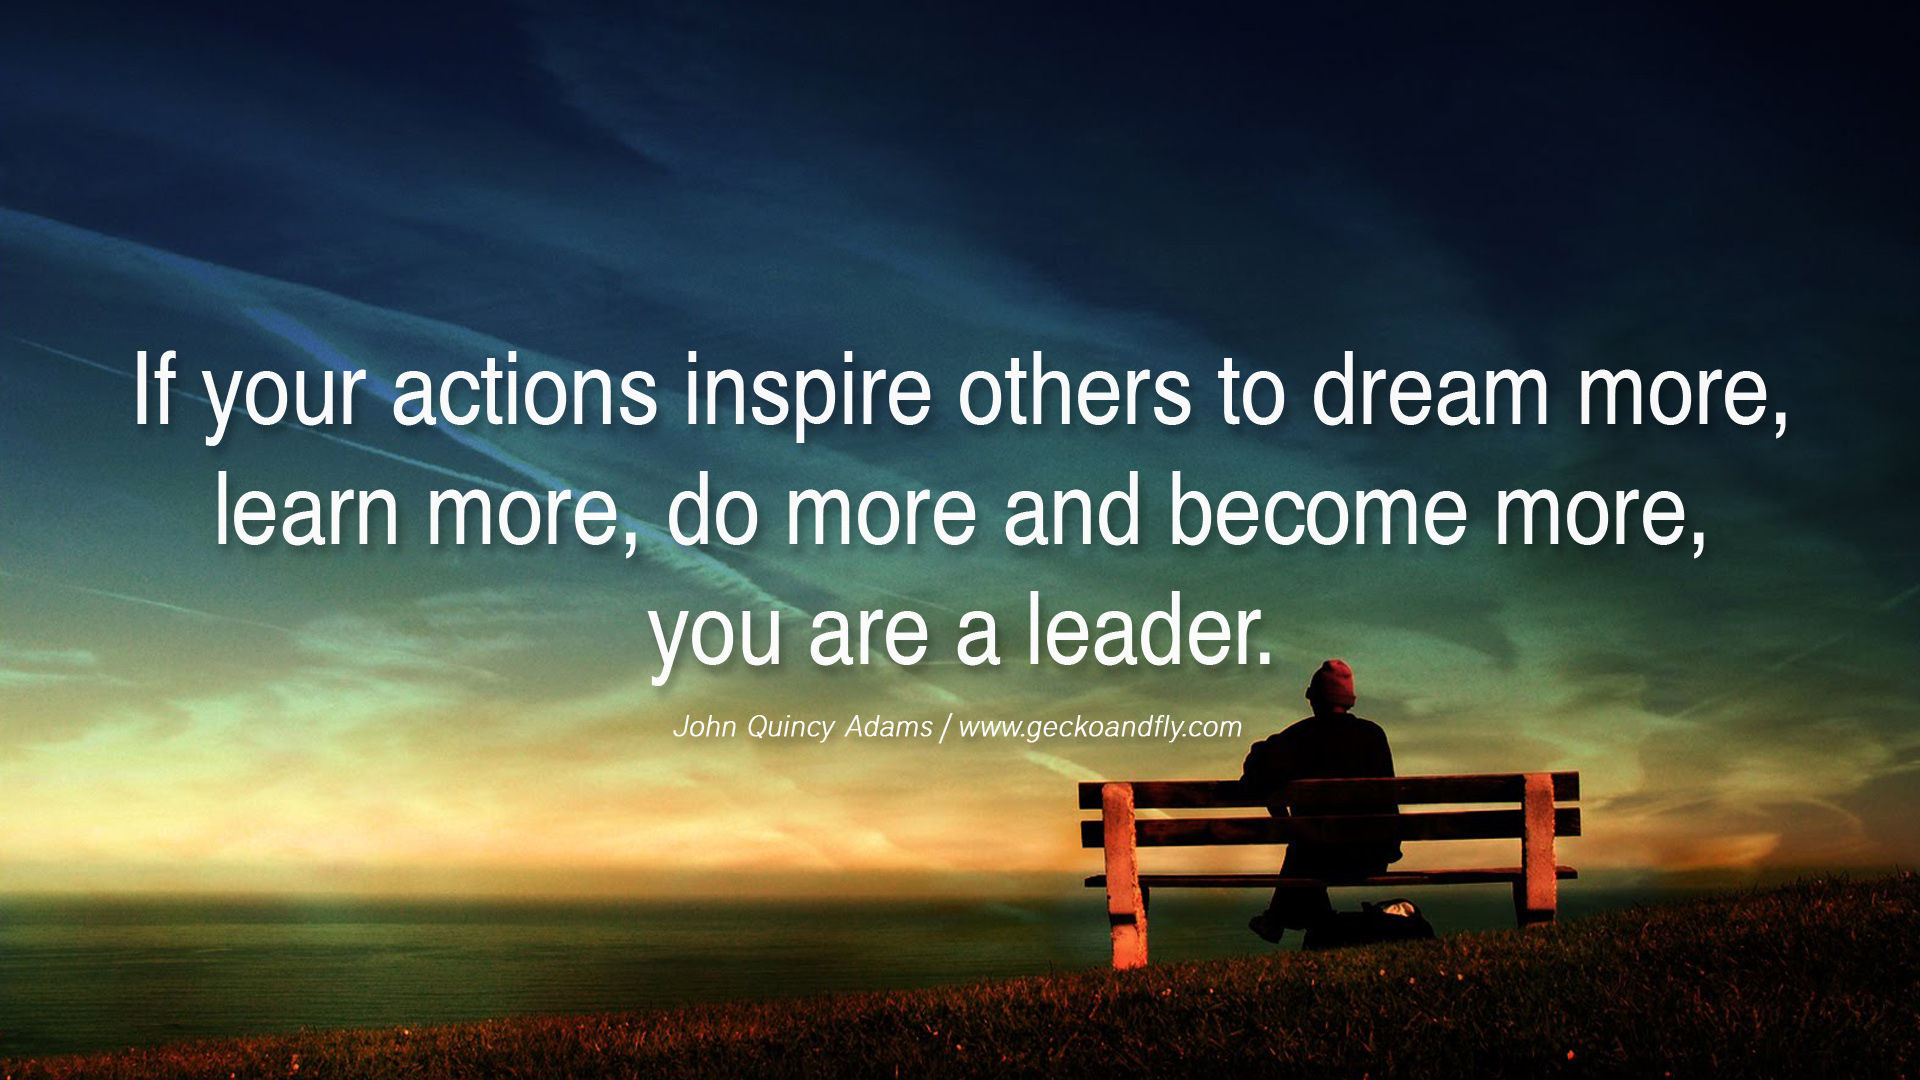 hd free leadership quote image